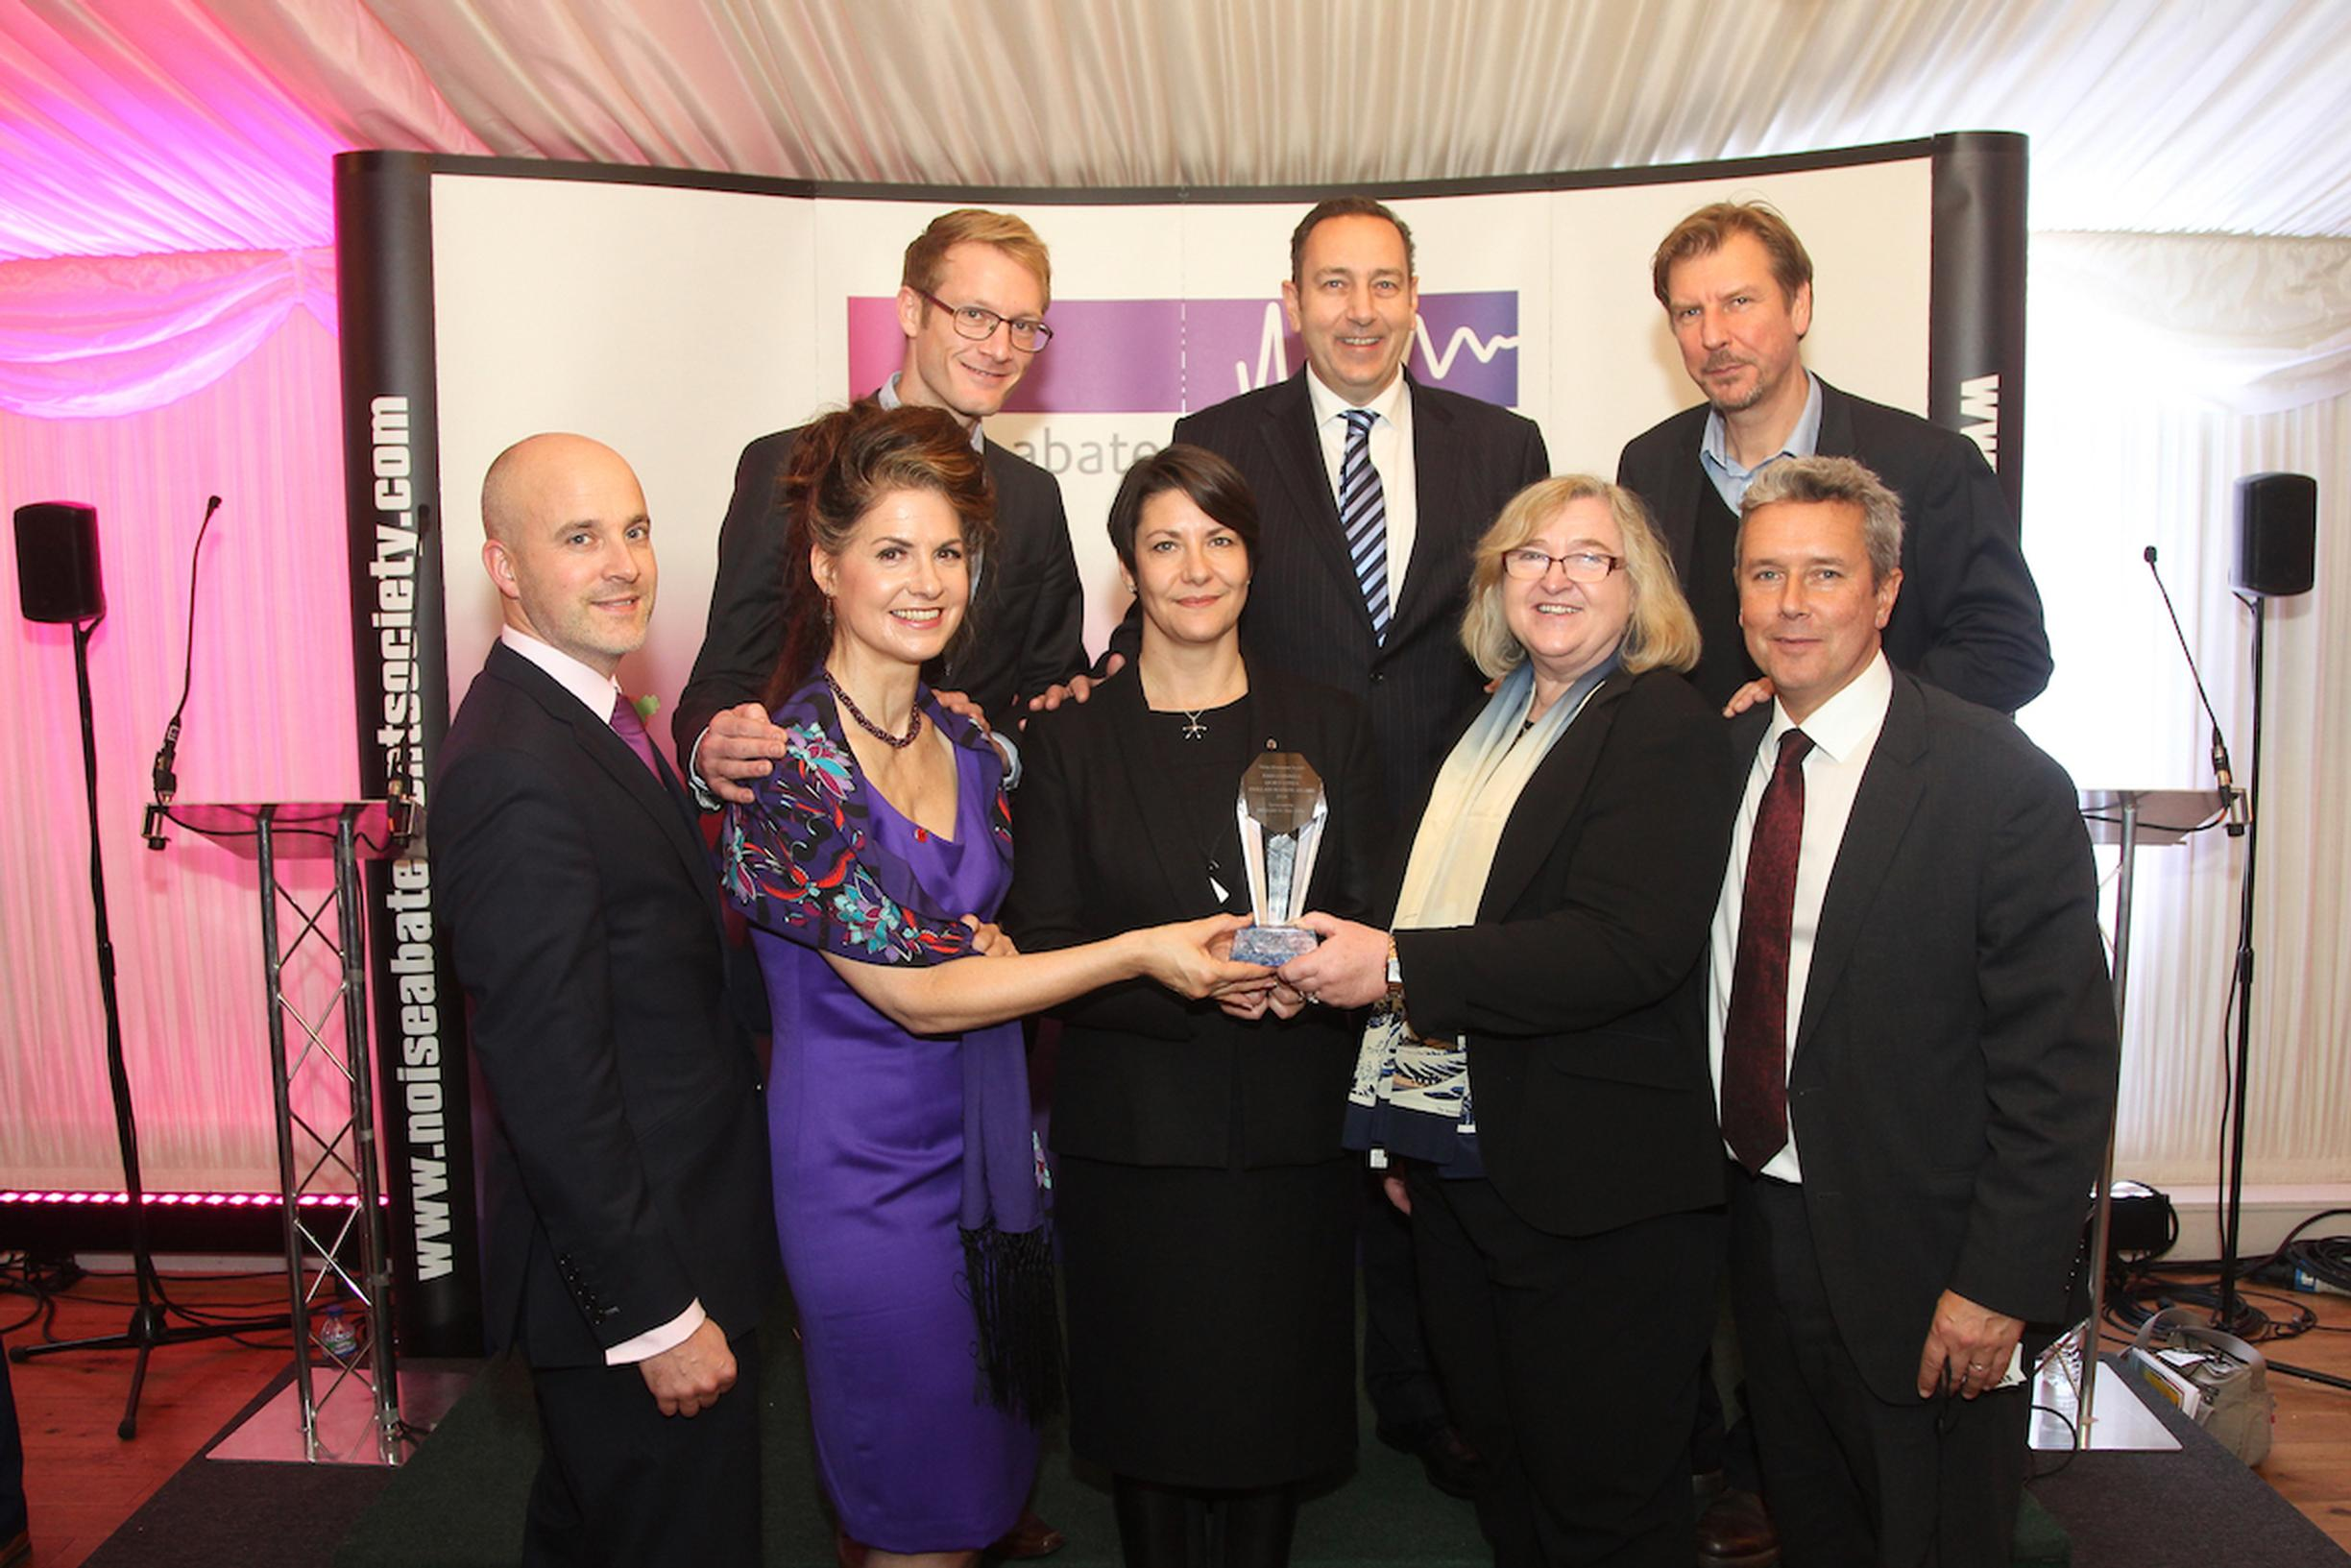 Big cheer for quieter deliveries at noise abatement awards